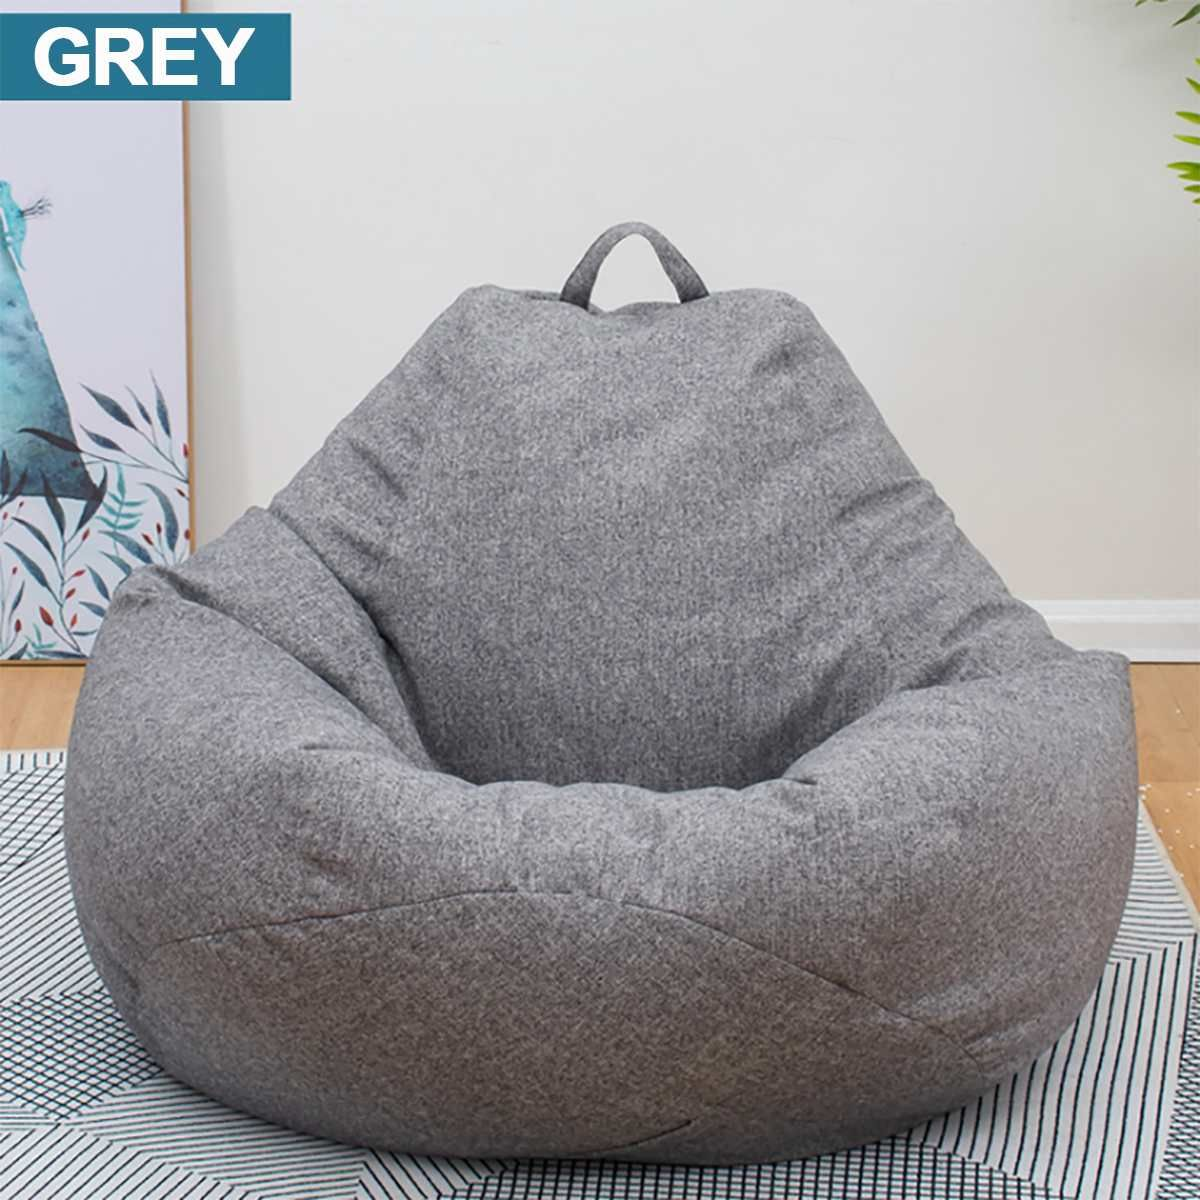 Large Small Lazy Beanbag Sofas Cover Chairs Without Filler Linen Cloth Lounger Seat Bean Bag Pouf Puff Couch T In 2020 Huge Bean Bag Chair Bean Bag Chair Bean Bag Sofa